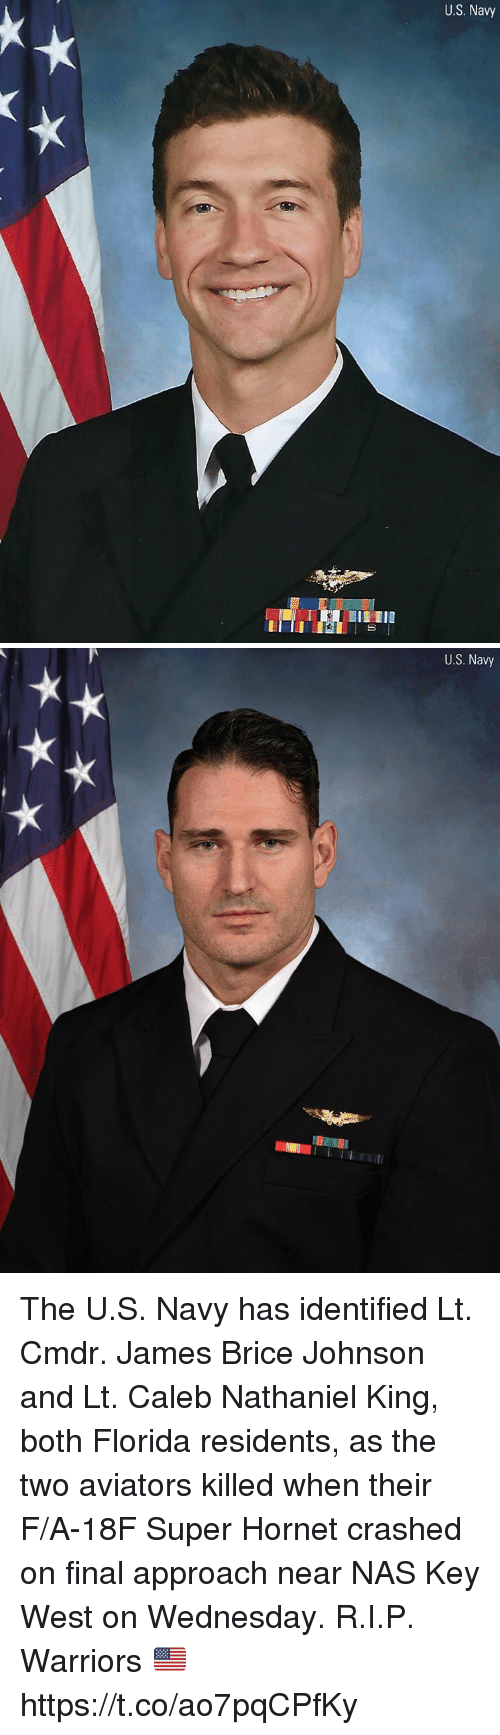 Memes, Nas, and Florida: U.S. Navy   U.S. Navy The U.S. Navy has identified Lt. Cmdr. James Brice Johnson and Lt. Caleb Nathaniel King, both Florida residents, as the two aviators killed when their F/A-18F Super Hornet crashed on final approach near NAS Key West on Wednesday. R.I.P. Warriors 🇺🇸 https://t.co/ao7pqCPfKy